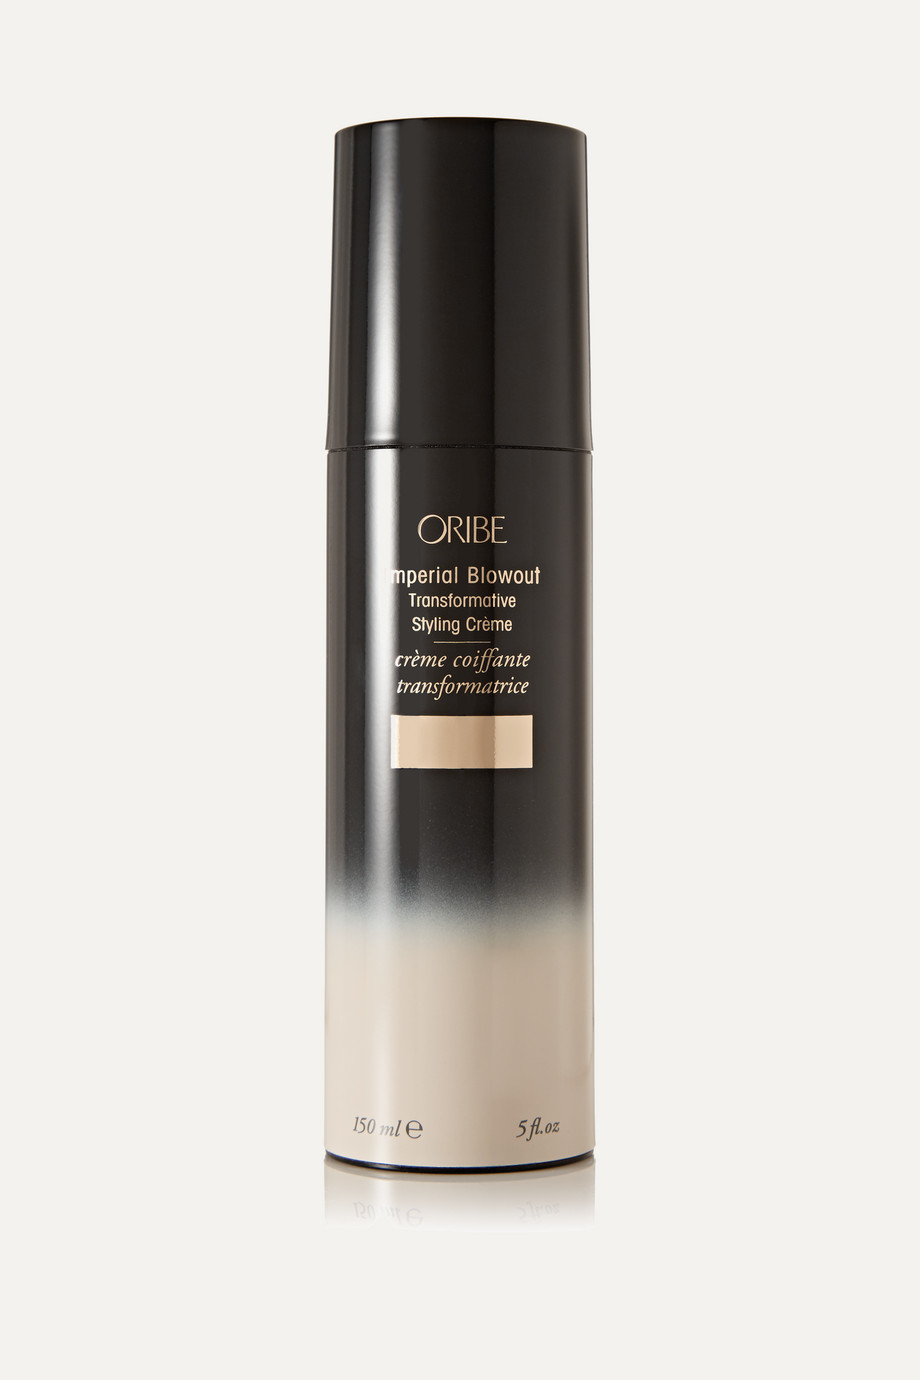 Oribe Imperial Blowout Transformative Styling Crème, 150ml